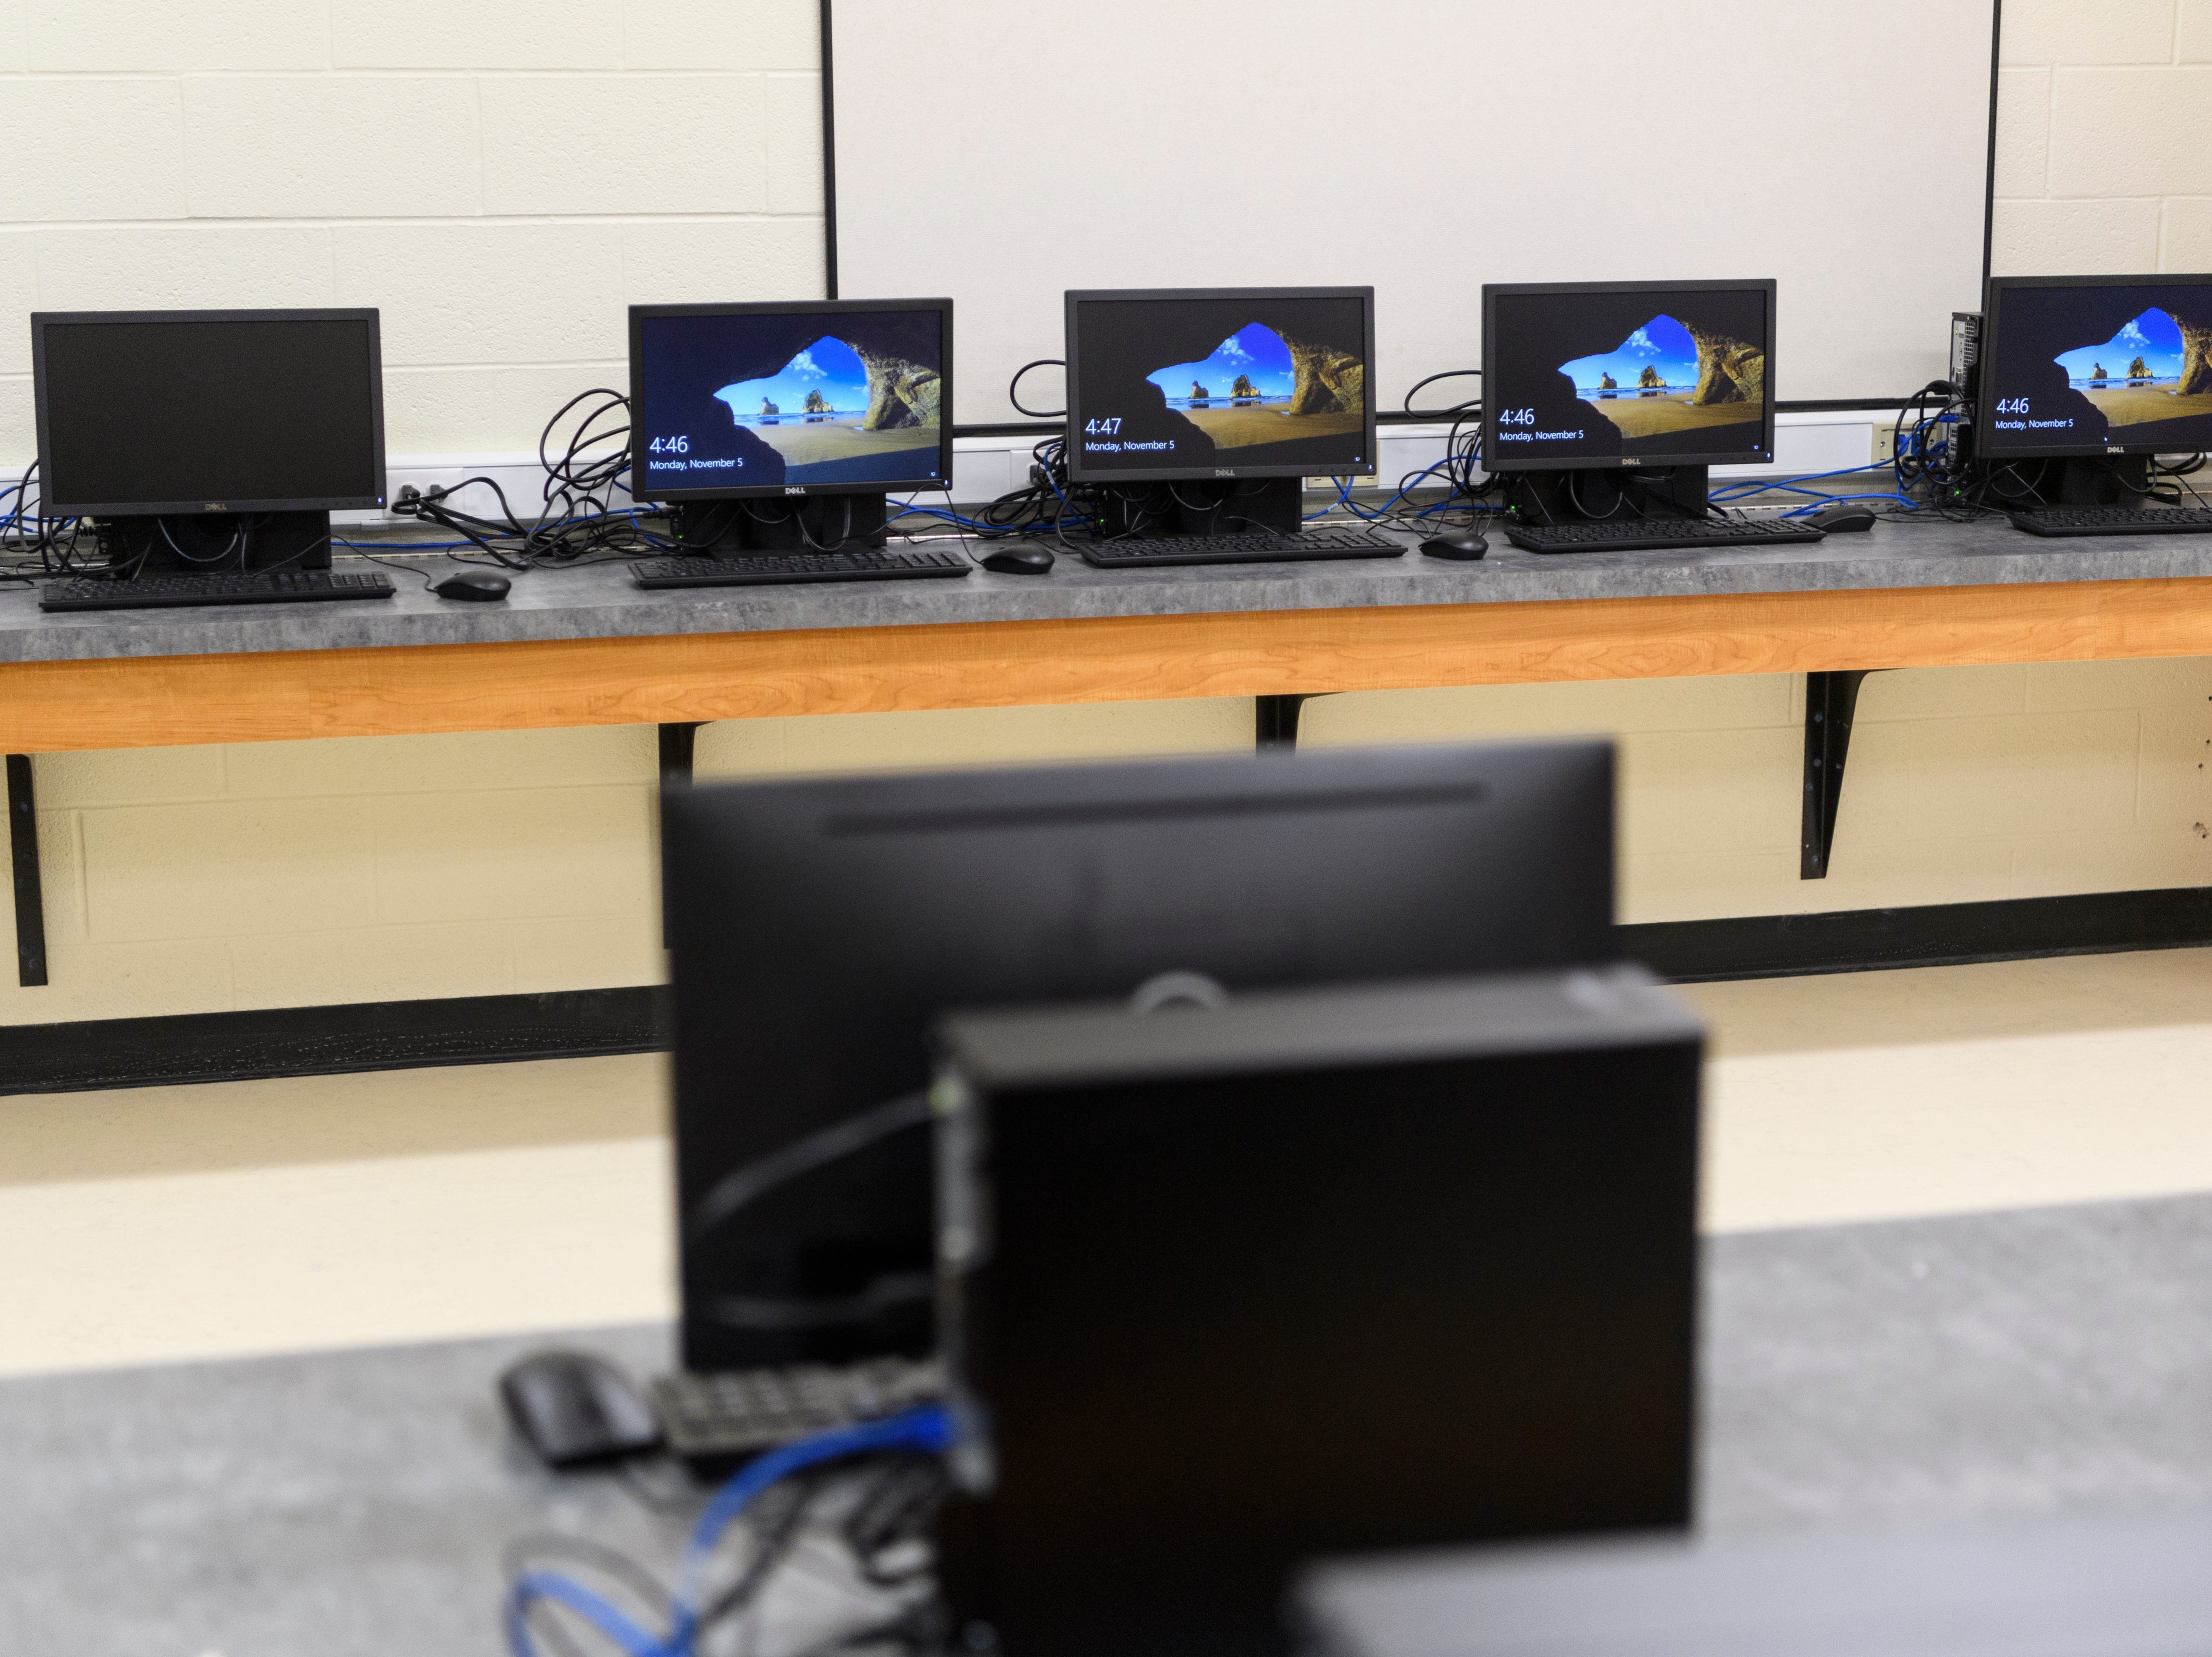 There are two computer labs inside the new 76,796 square-foot building that will become the new Spottsville Elementary school. Faculty and students are expected to move into the new building next Monday, November 12.